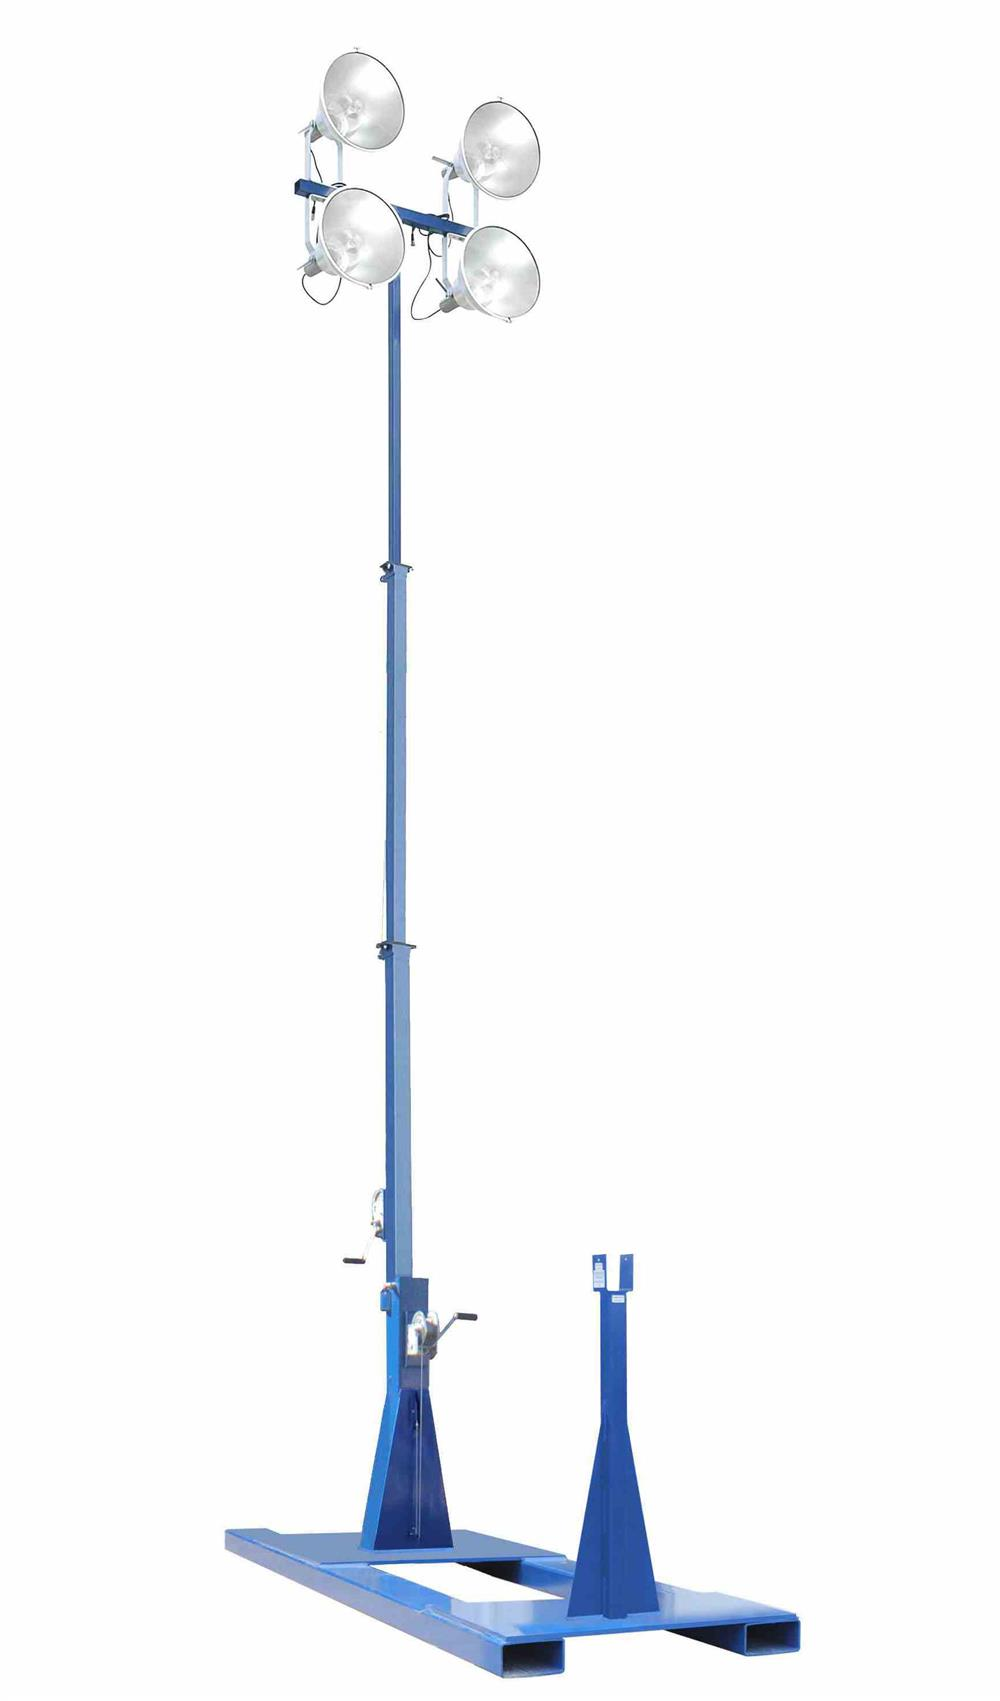 4000W Skid-Mounted Fold Over Light Mast Helps Monitor Secure Locations From an Elevated Position